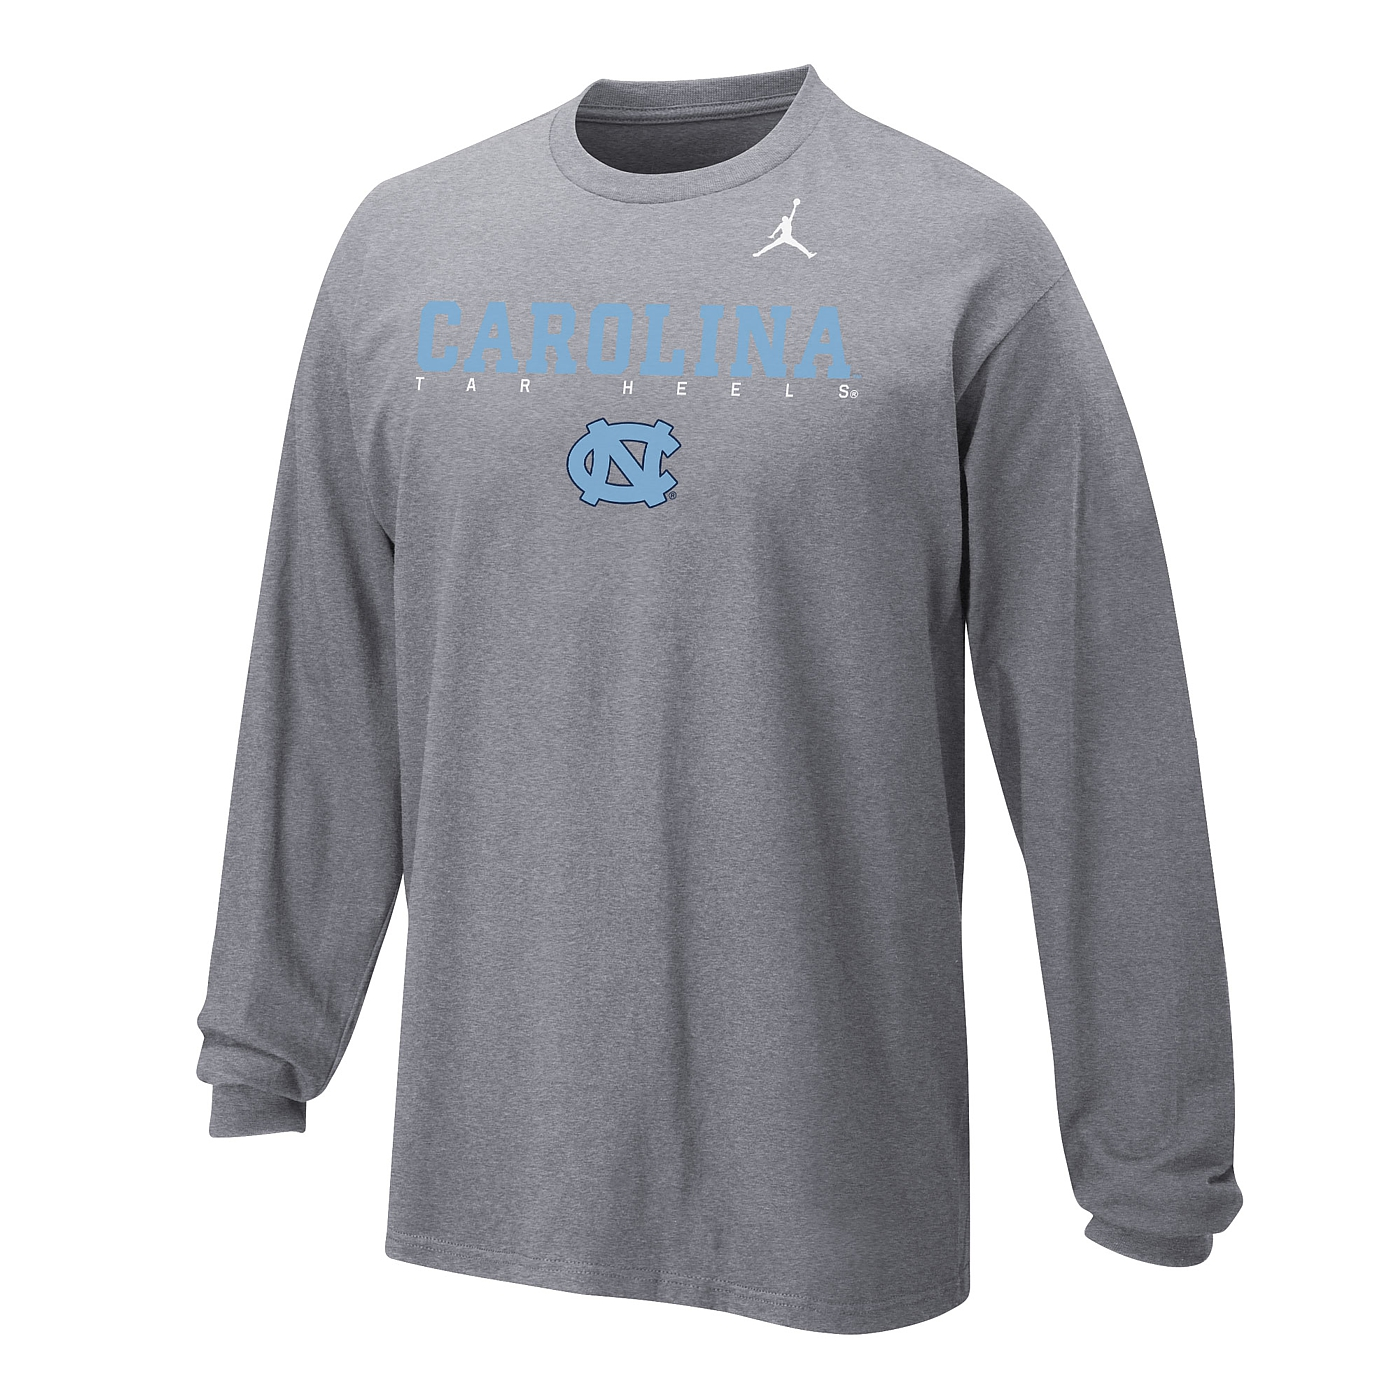 bda1f59e1b0a Johnny T-shirt - North Carolina Tar Heels - Youth Long Sleeve Facility T  (Grey) by Nike